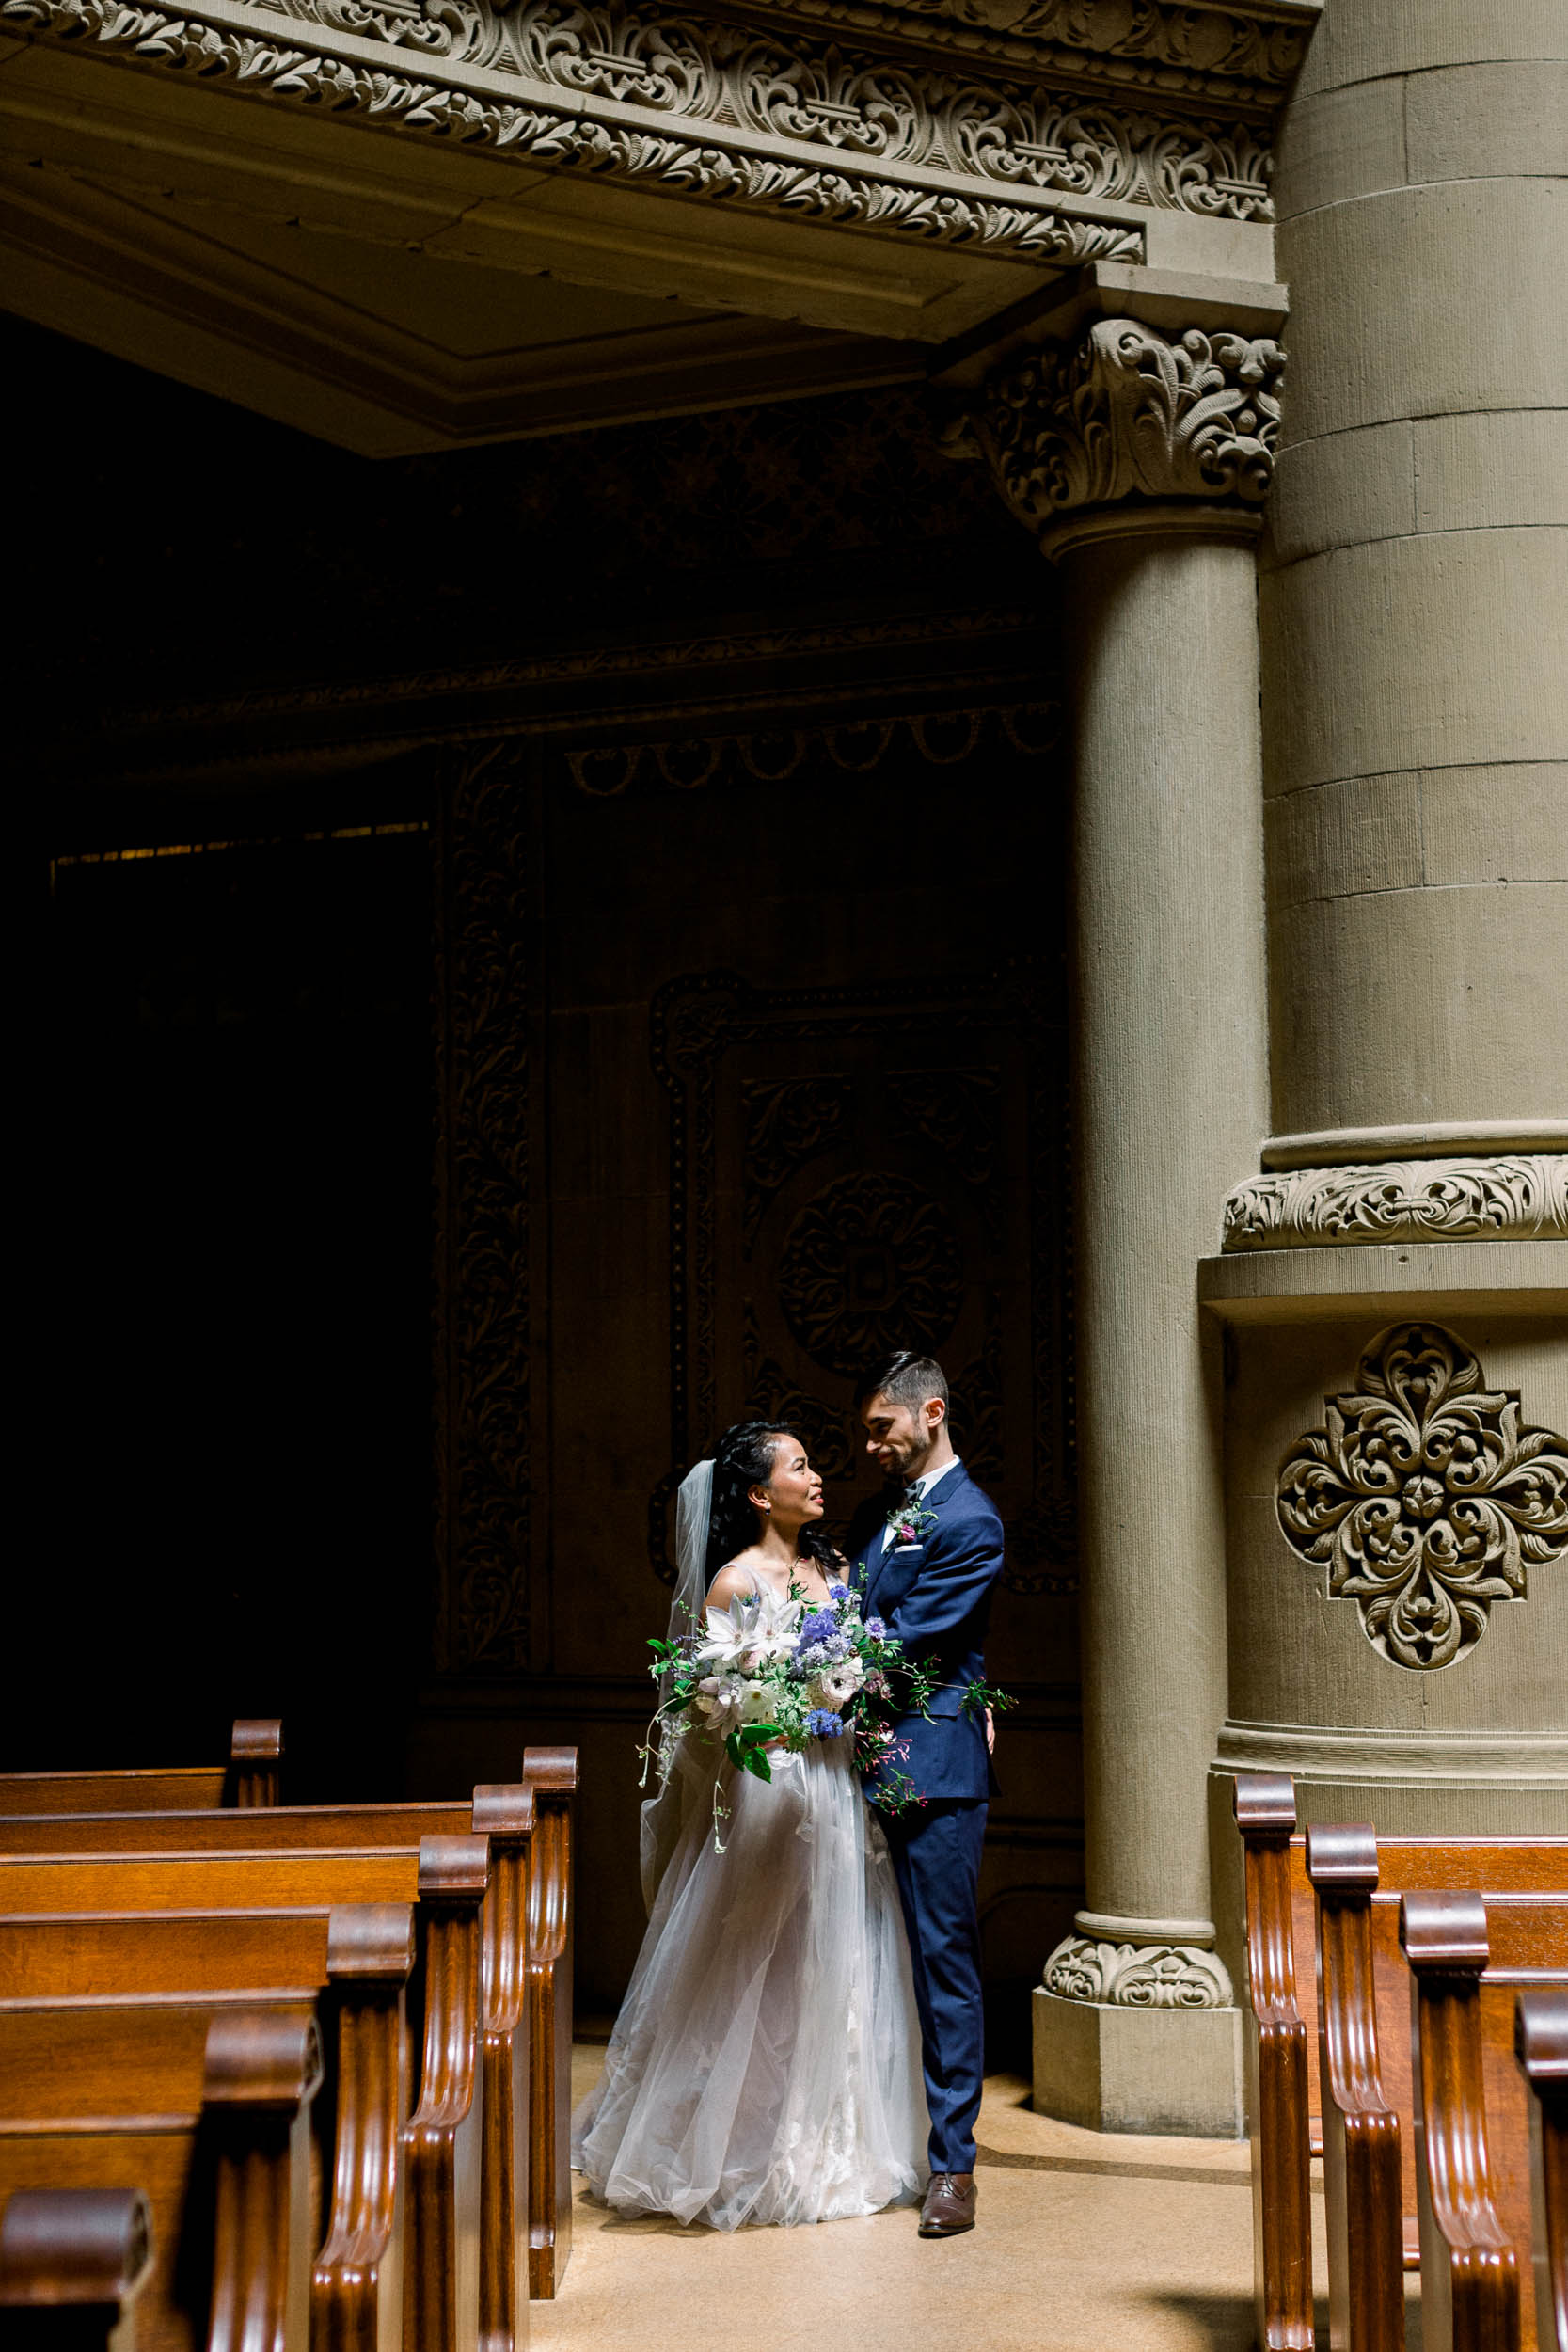 052519_B+S_Hidden Villa Wedding_Buena Lane Photography_052519_0189CY.jpg